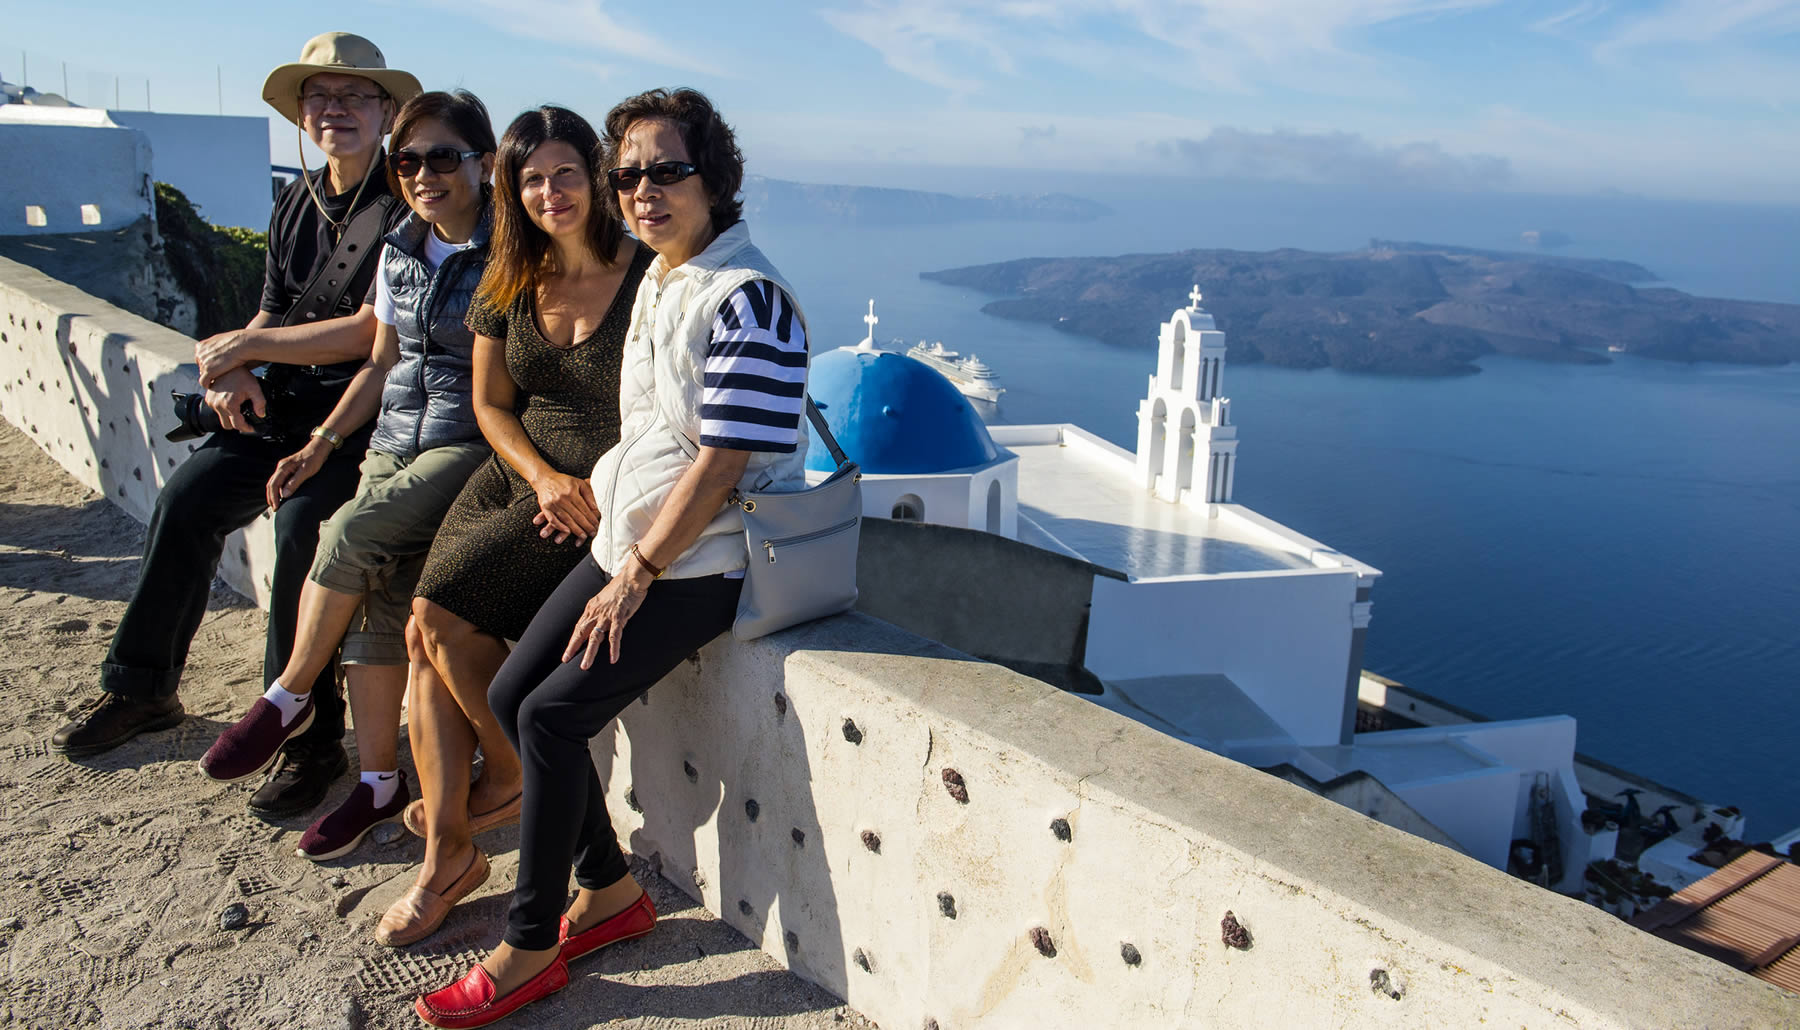 Santorini Karavas Travel - Private Tours & Transfers